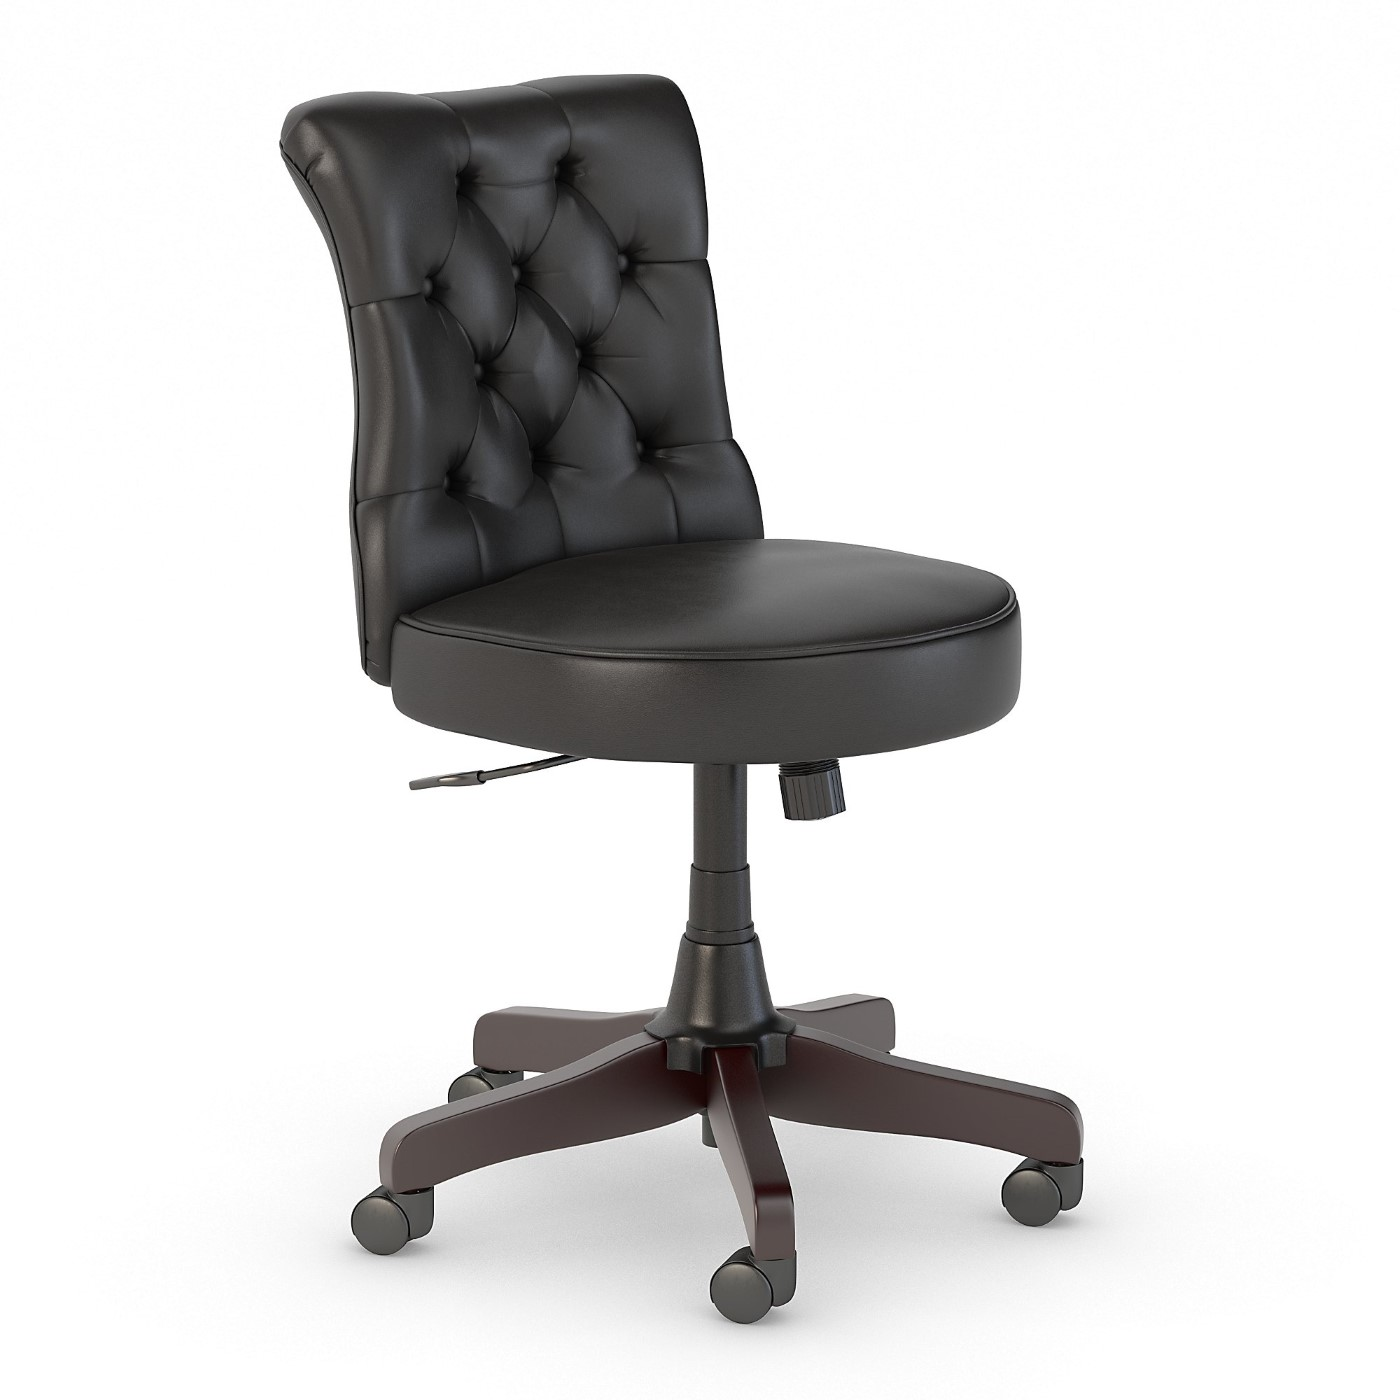 <font color=#c60><b>BUSH BUSINESS FURNITURE ARDEN LANE MID BACK TUFTED OFFICE CHAIR. FREE SHIPPING 30H x 72L x 72W</font></b>